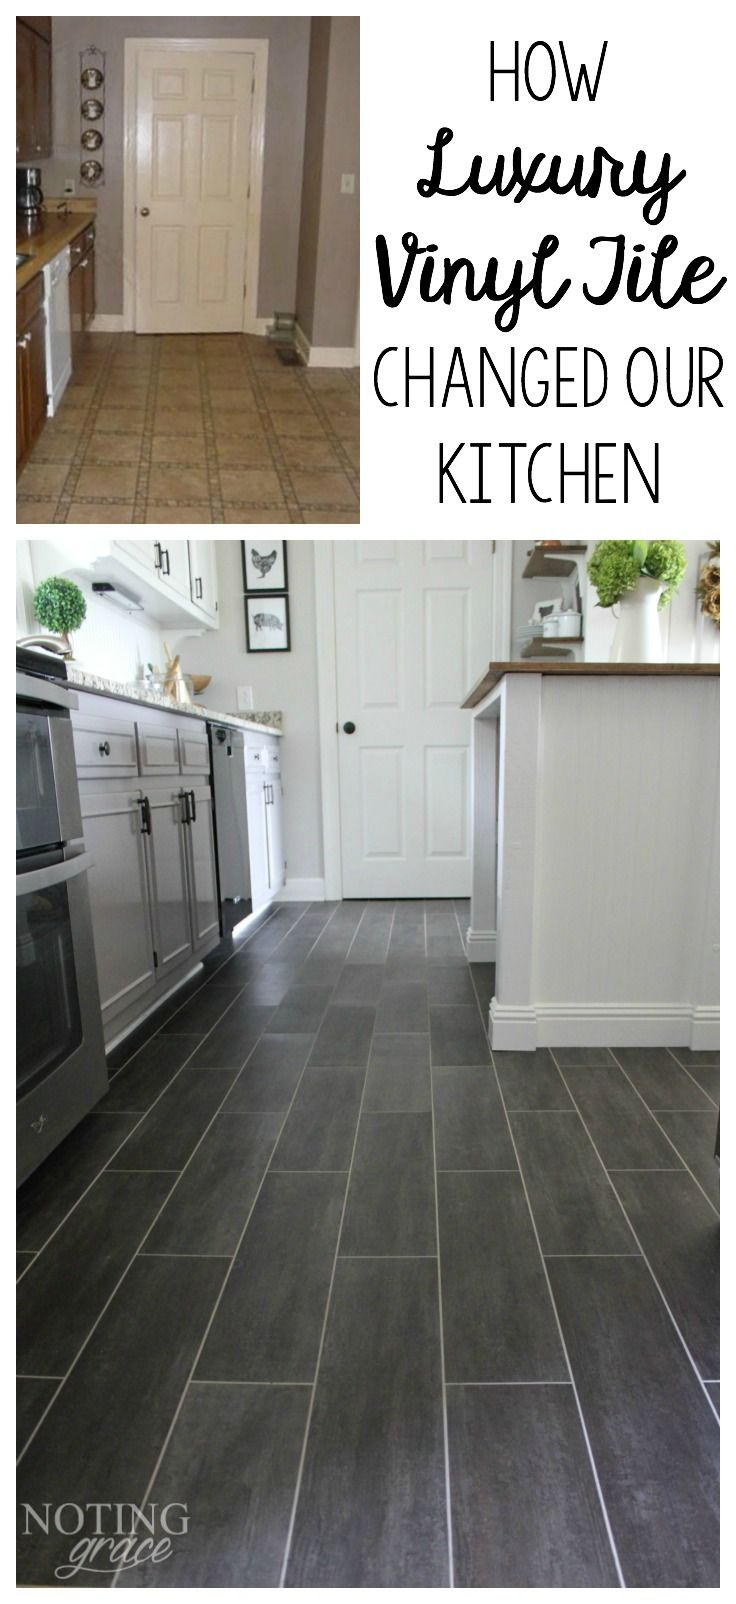 Kitchen Flooring Options Pros And Cons 17 Best Ideas About Kitchen Flooring On Pinterest Kitchen Floors